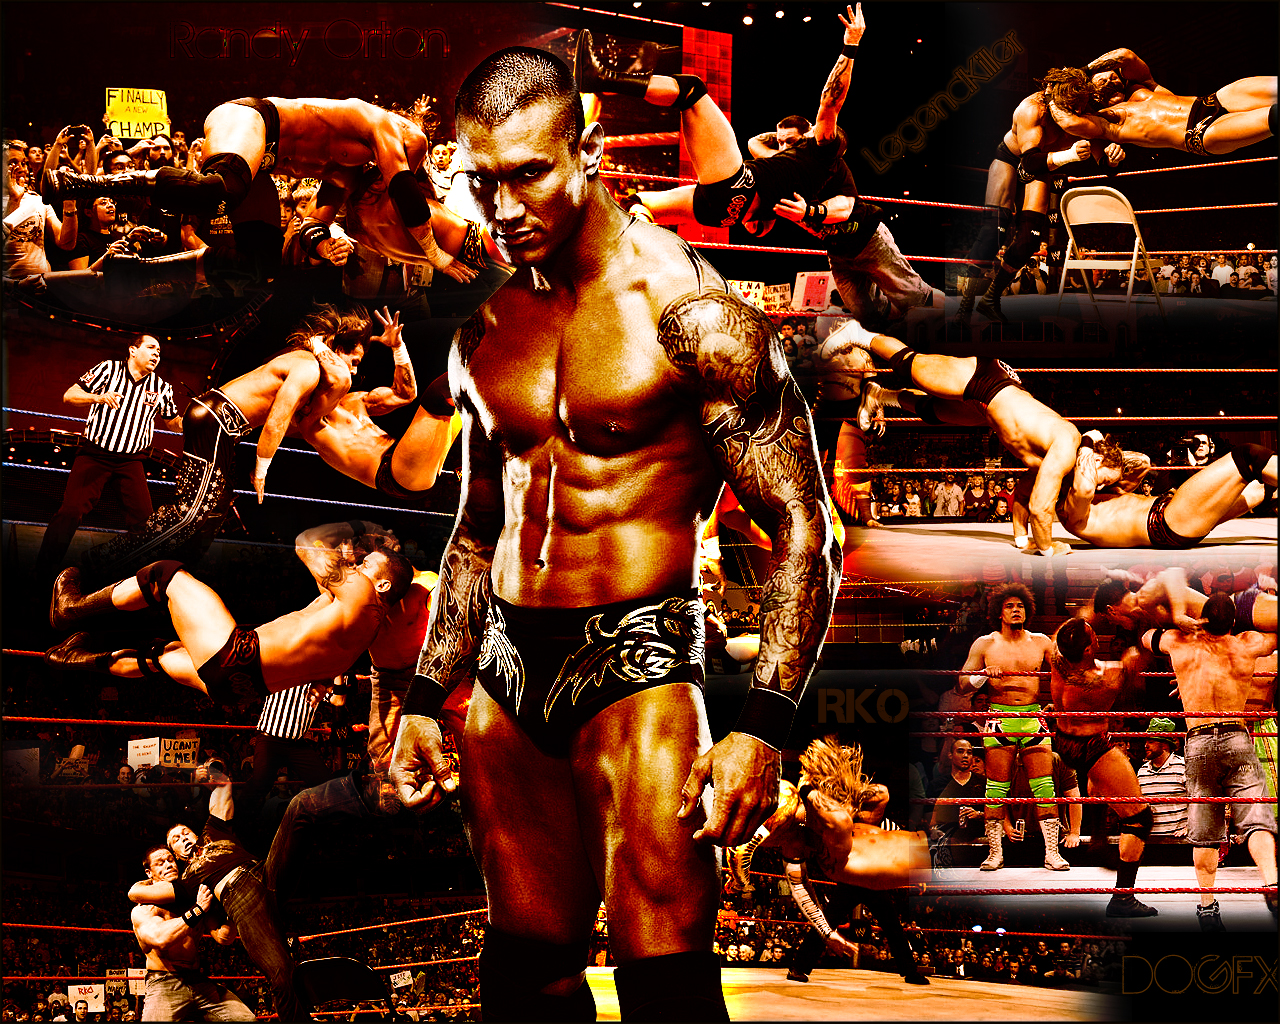 Randy_Orton_Wallpaper_by_SpL1nteR95